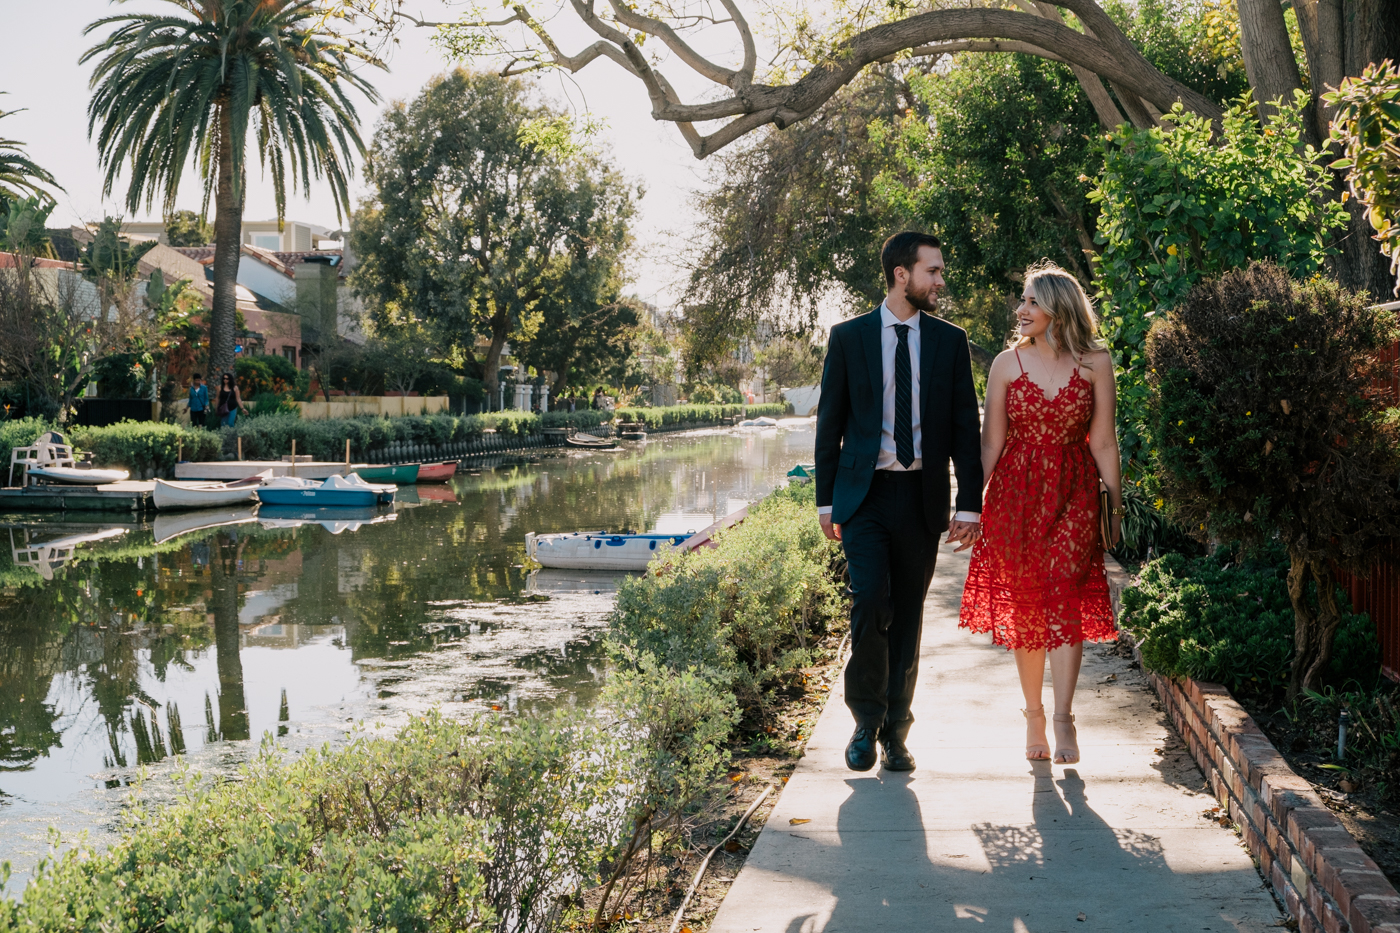 Benjamin and Debora Dahl at the Venice Canals for Valentine's Day